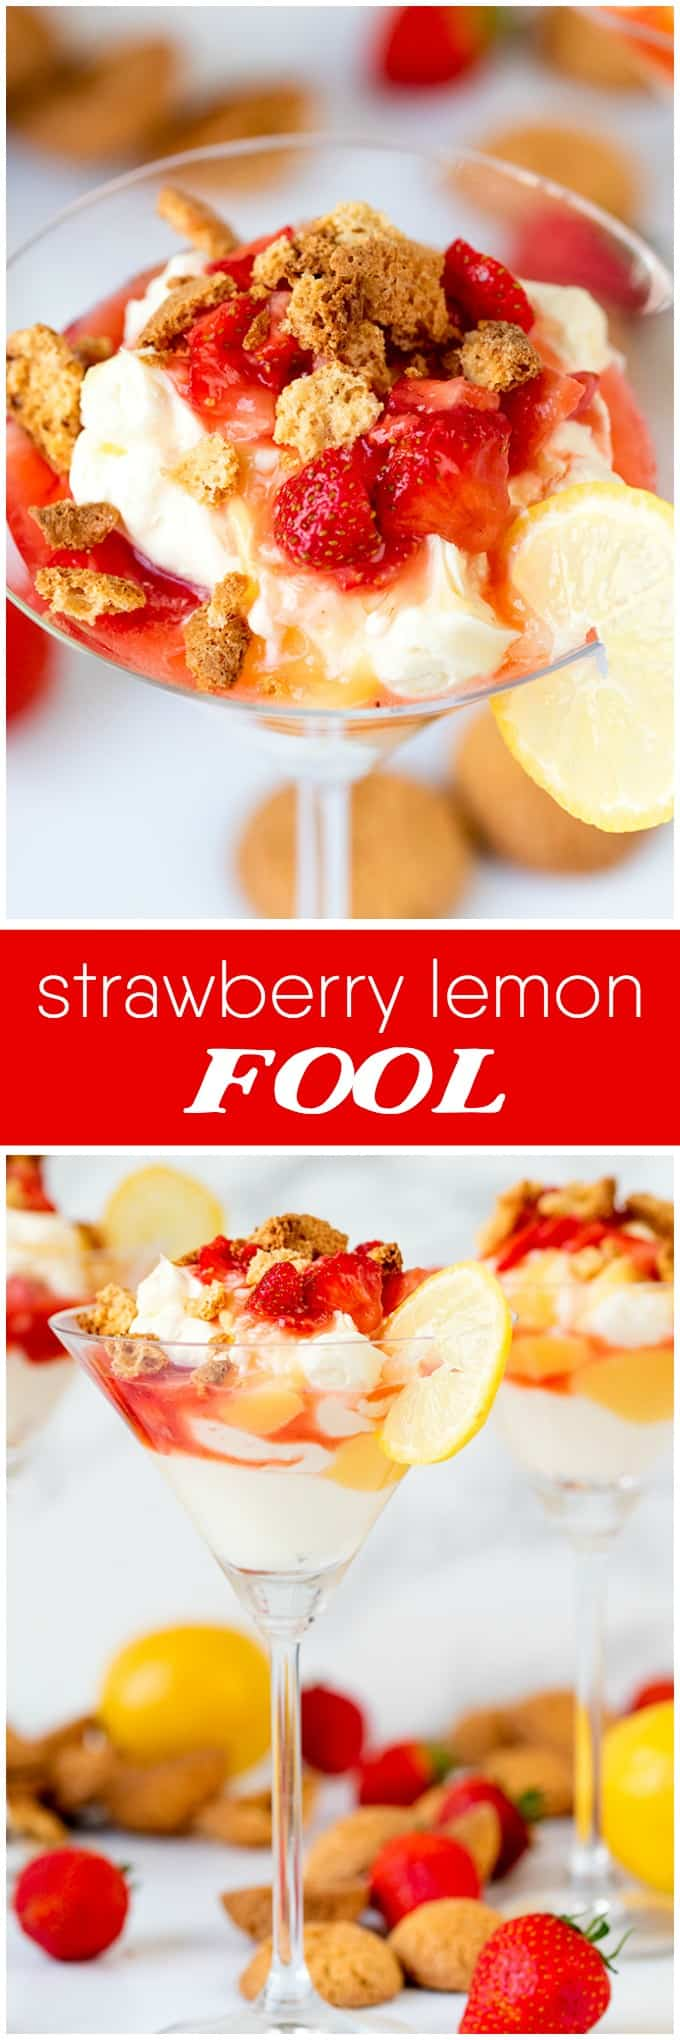 Strawberry Lemon Fool - Perfect for a summer party or BBQ! This luscious dessert is piled high with soft, sweetened whipped cream, dotted with juicy amaretto-spiked strawberries and tangy lemon curd and then topped with crushed amaretto biscuits.